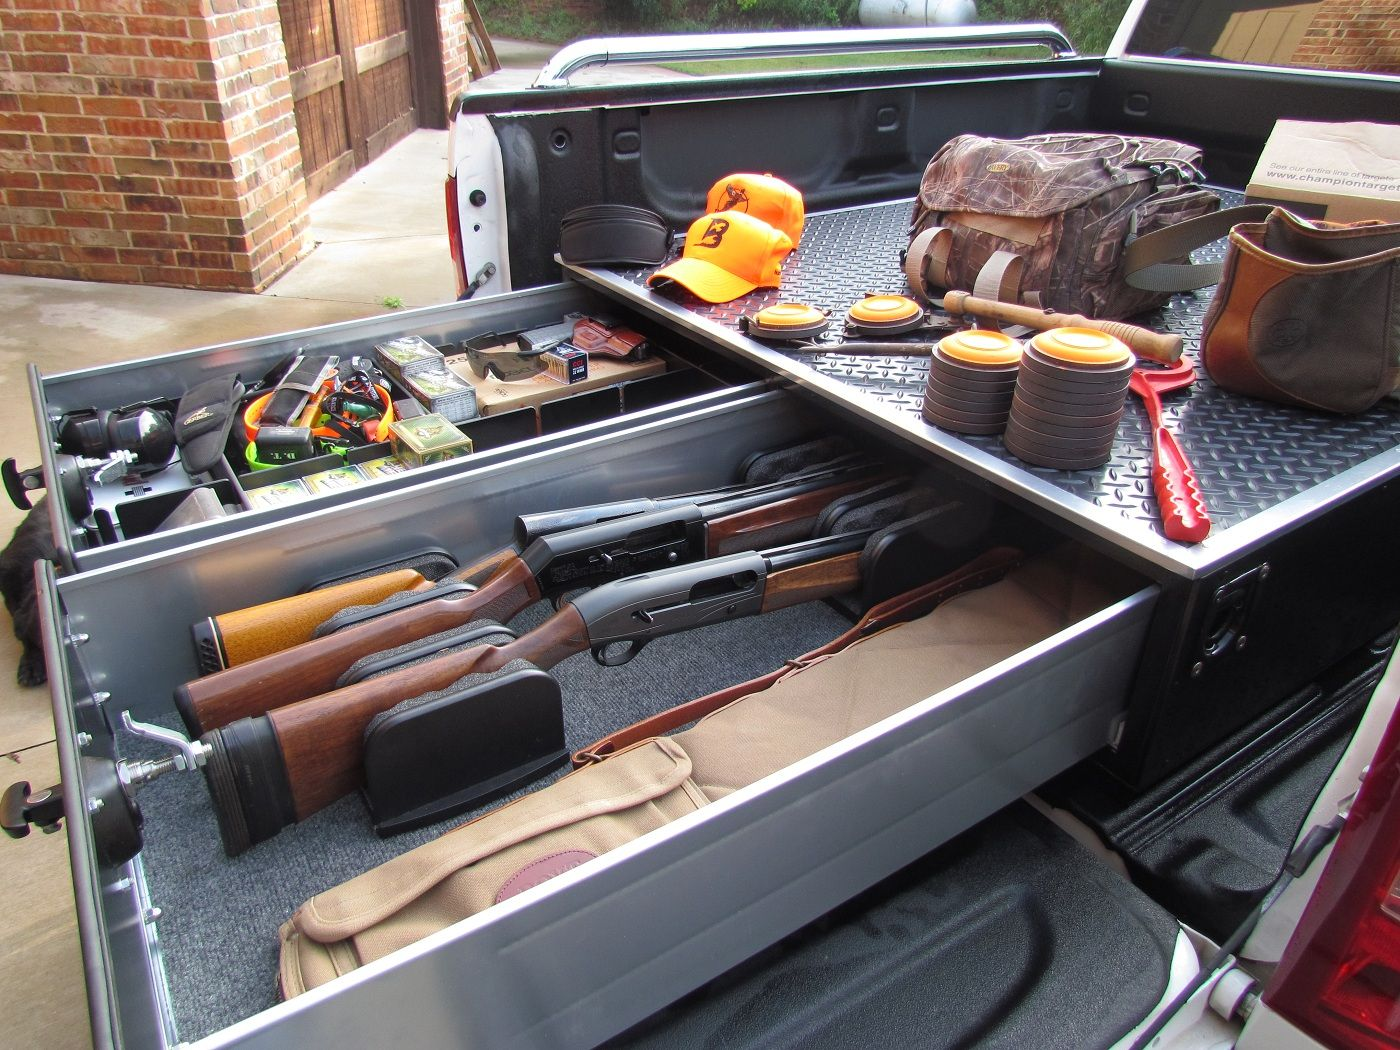 MobileStrong's Truck Bed Storage Drawers are ultra durable, maintenance  free, and environmentally friendly. - Truck Bed Storage Drawers - Protect & Organize Your Gear Best